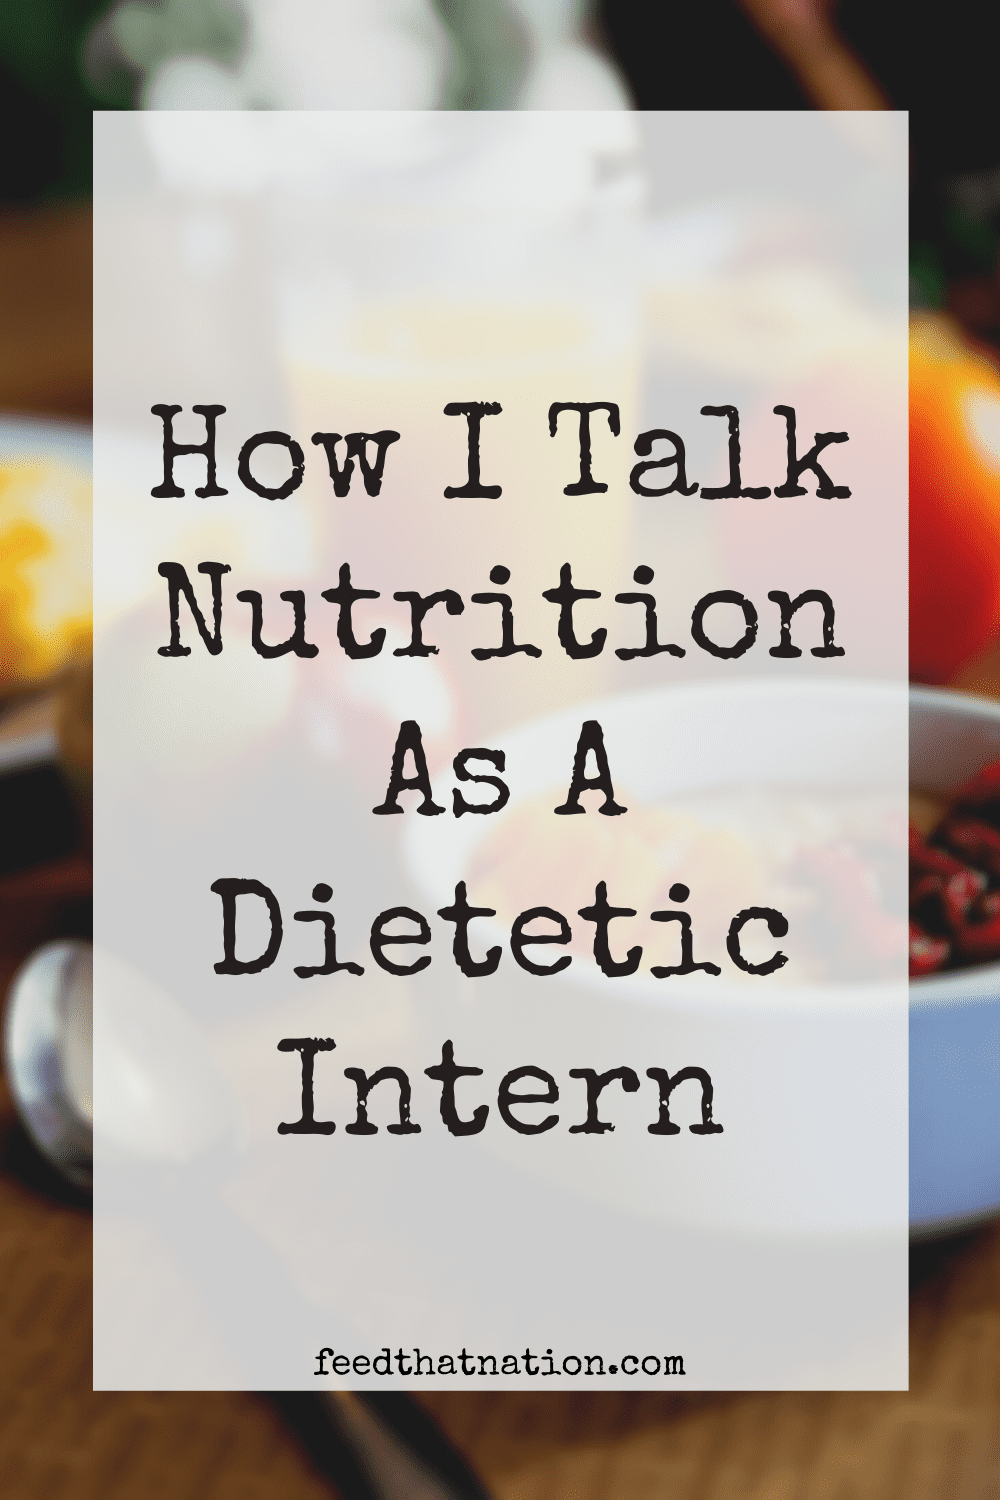 How I Talk Nutrition as a Dietetic Intern